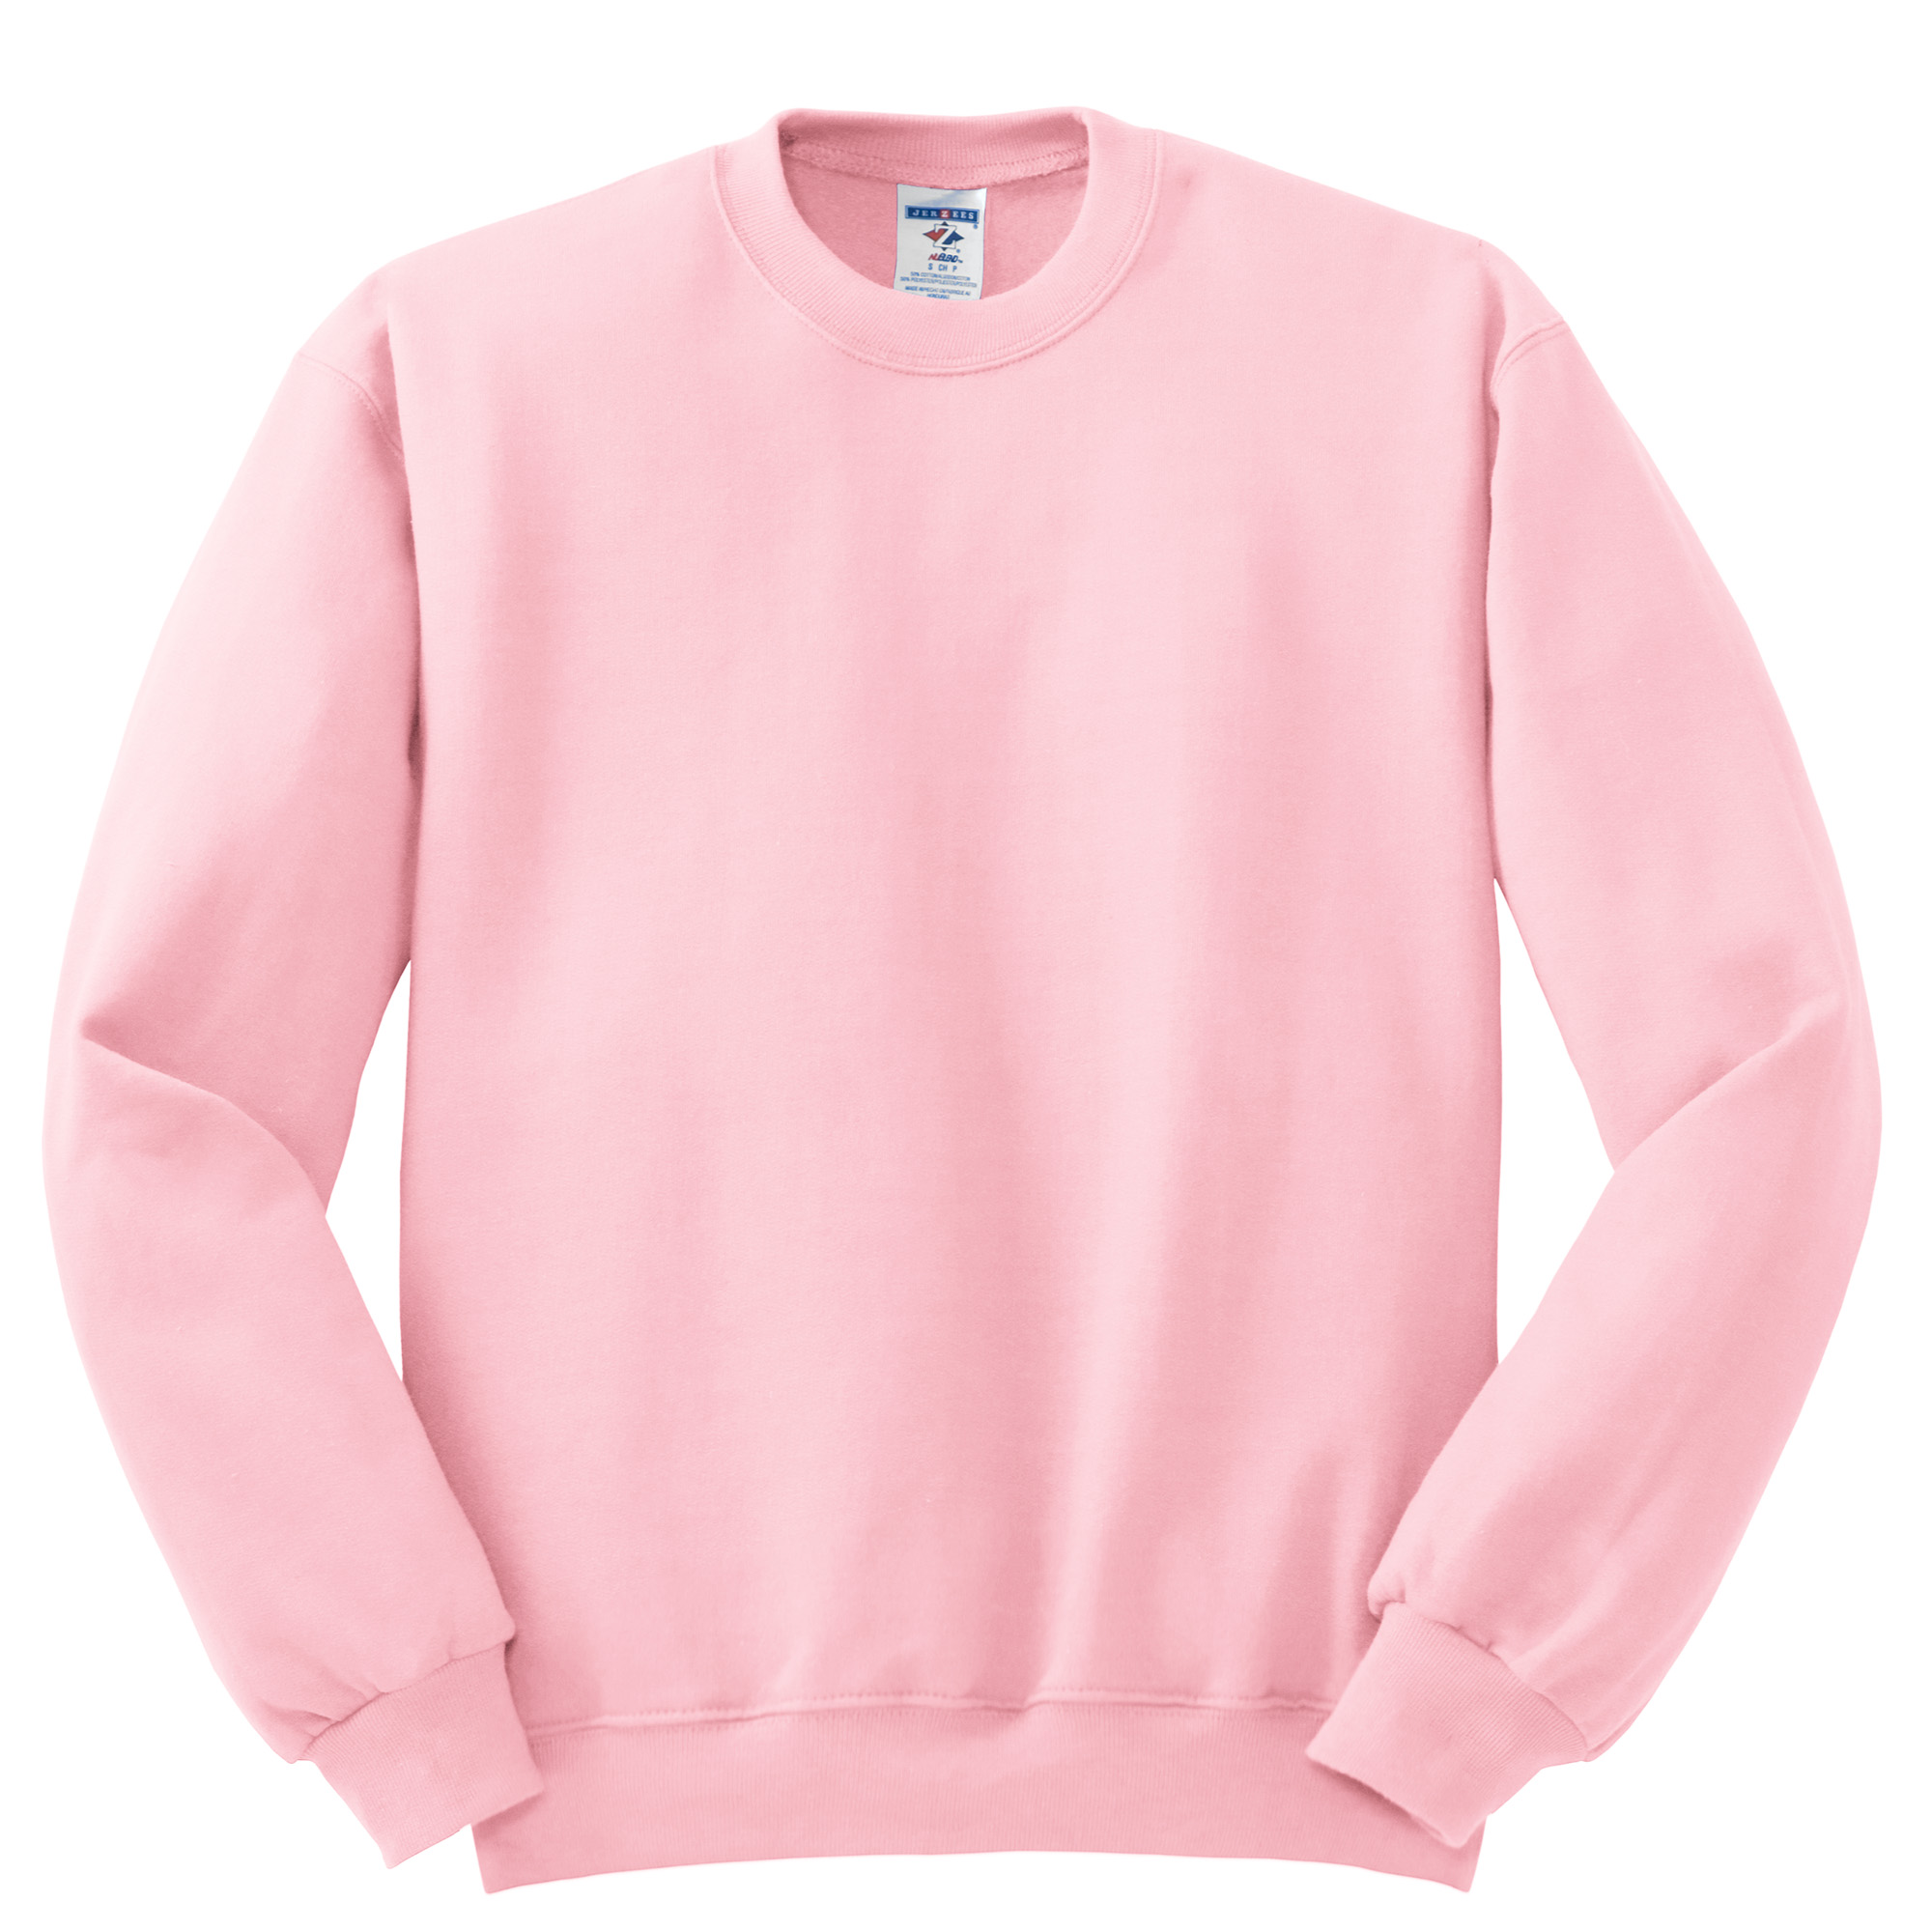 Pink Crew Neck Sweatshirt - Baggage Clothing